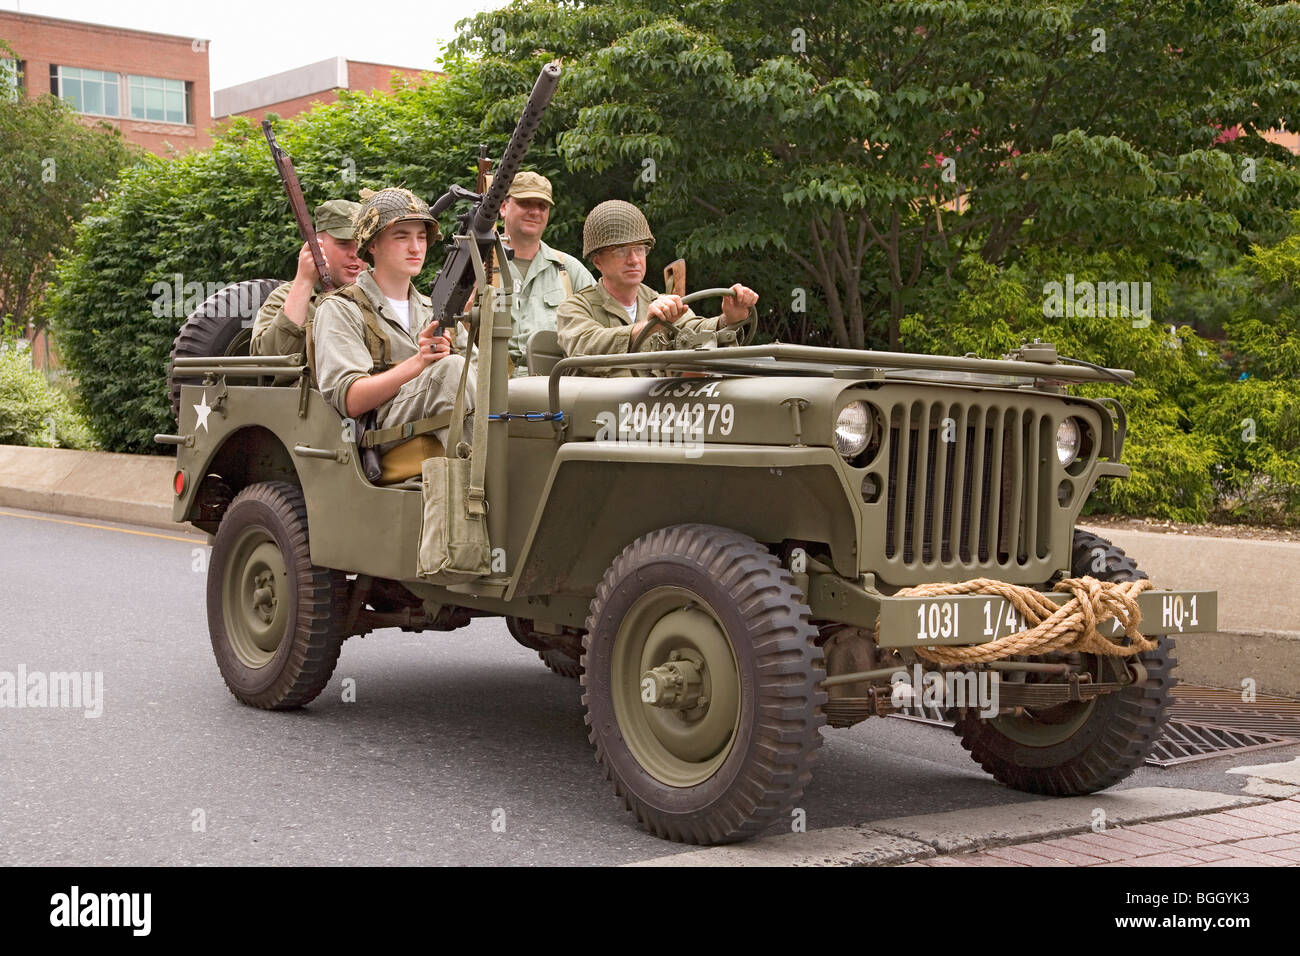 Reenactment of World War II Jeep and infantrymen driving in 1940s